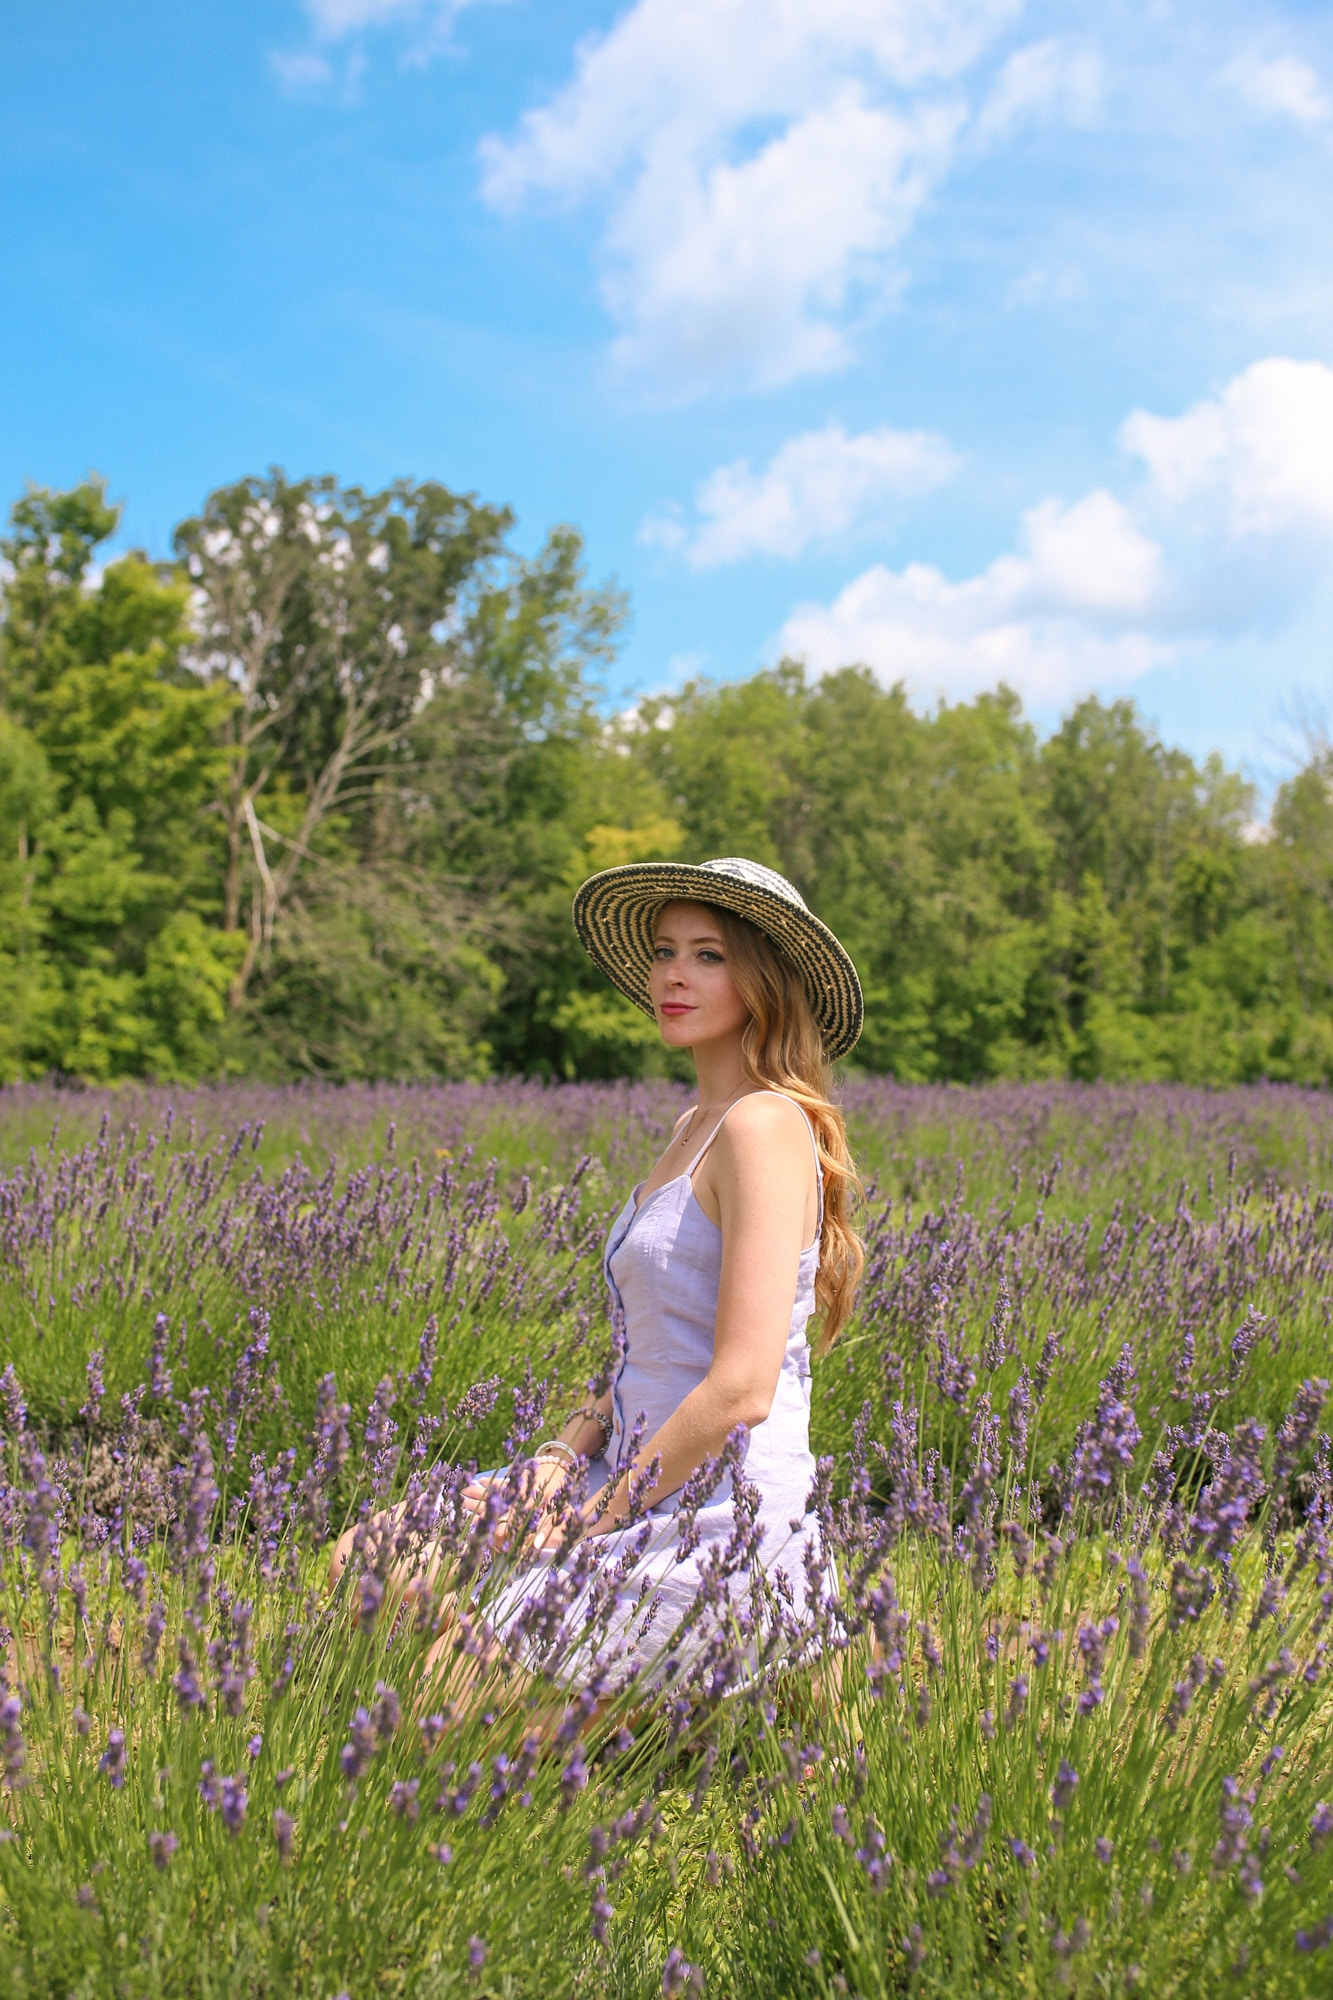 Straw hat and purple linen dress from Urban Outfitters | What to wear to a Lavender field - stay cool in a light linen dress and sunhat.